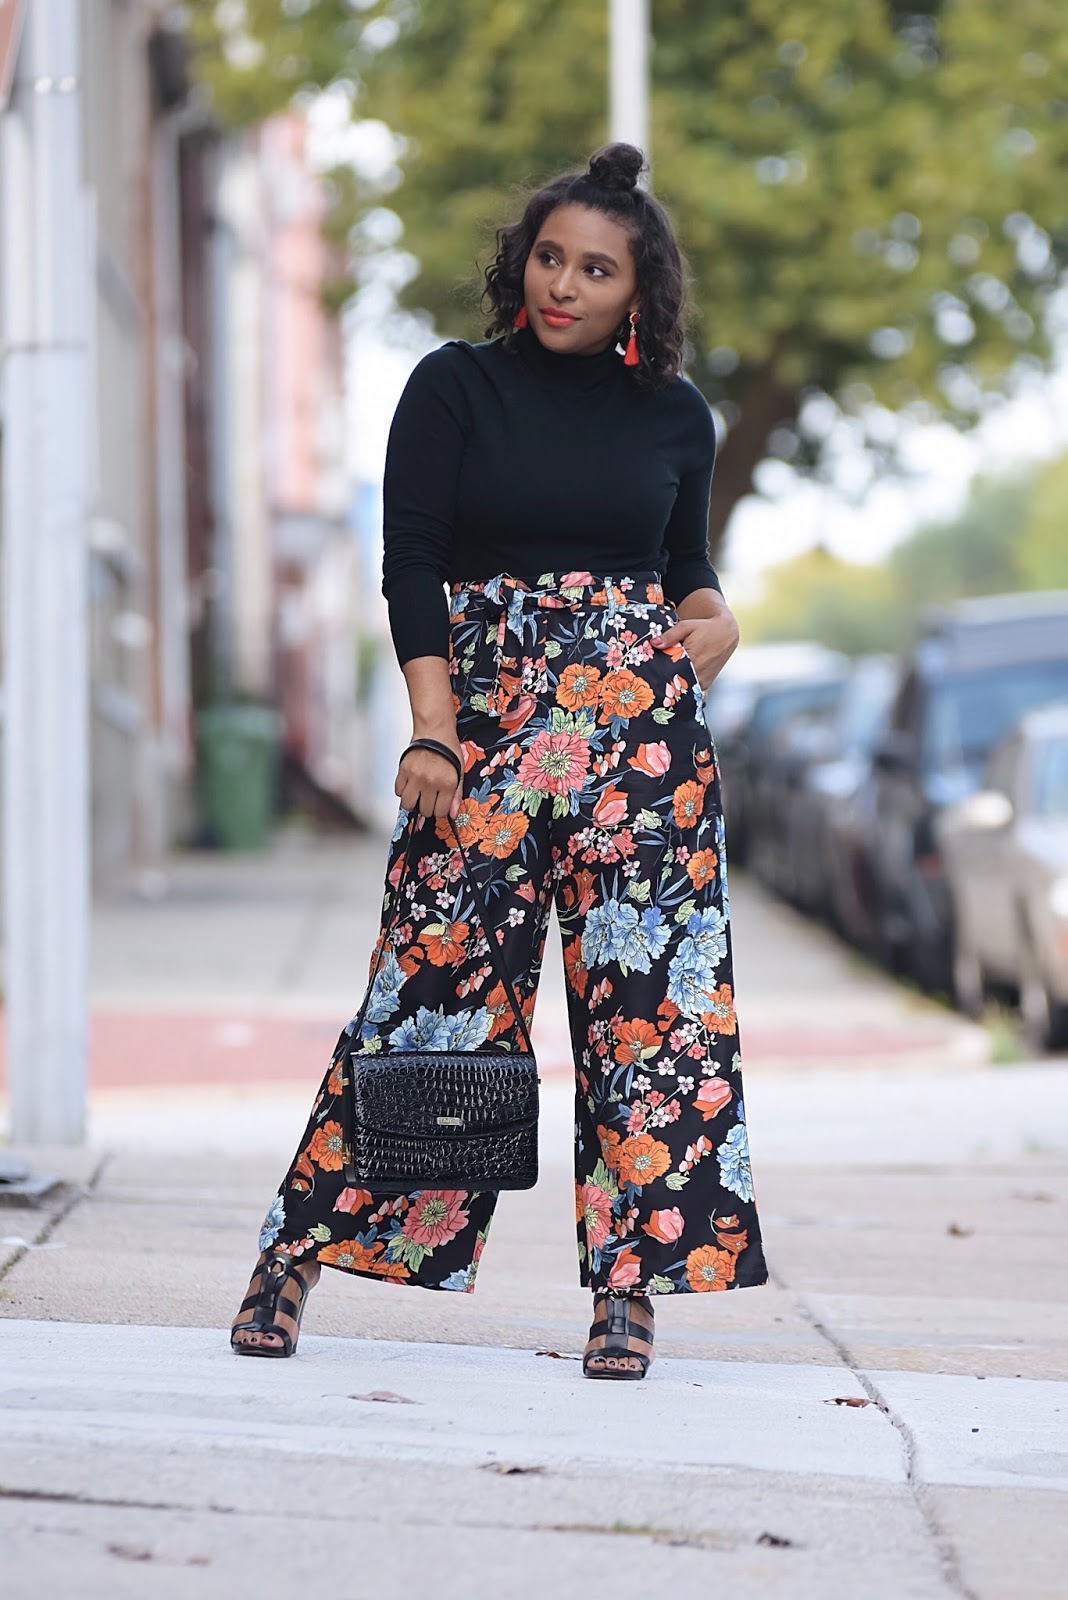 Florals in the fall, floral pants, fall outfit ideas, tassel earrings, Rosegal, baltimore, floral plazzo pants, wide log pants, fall makeup